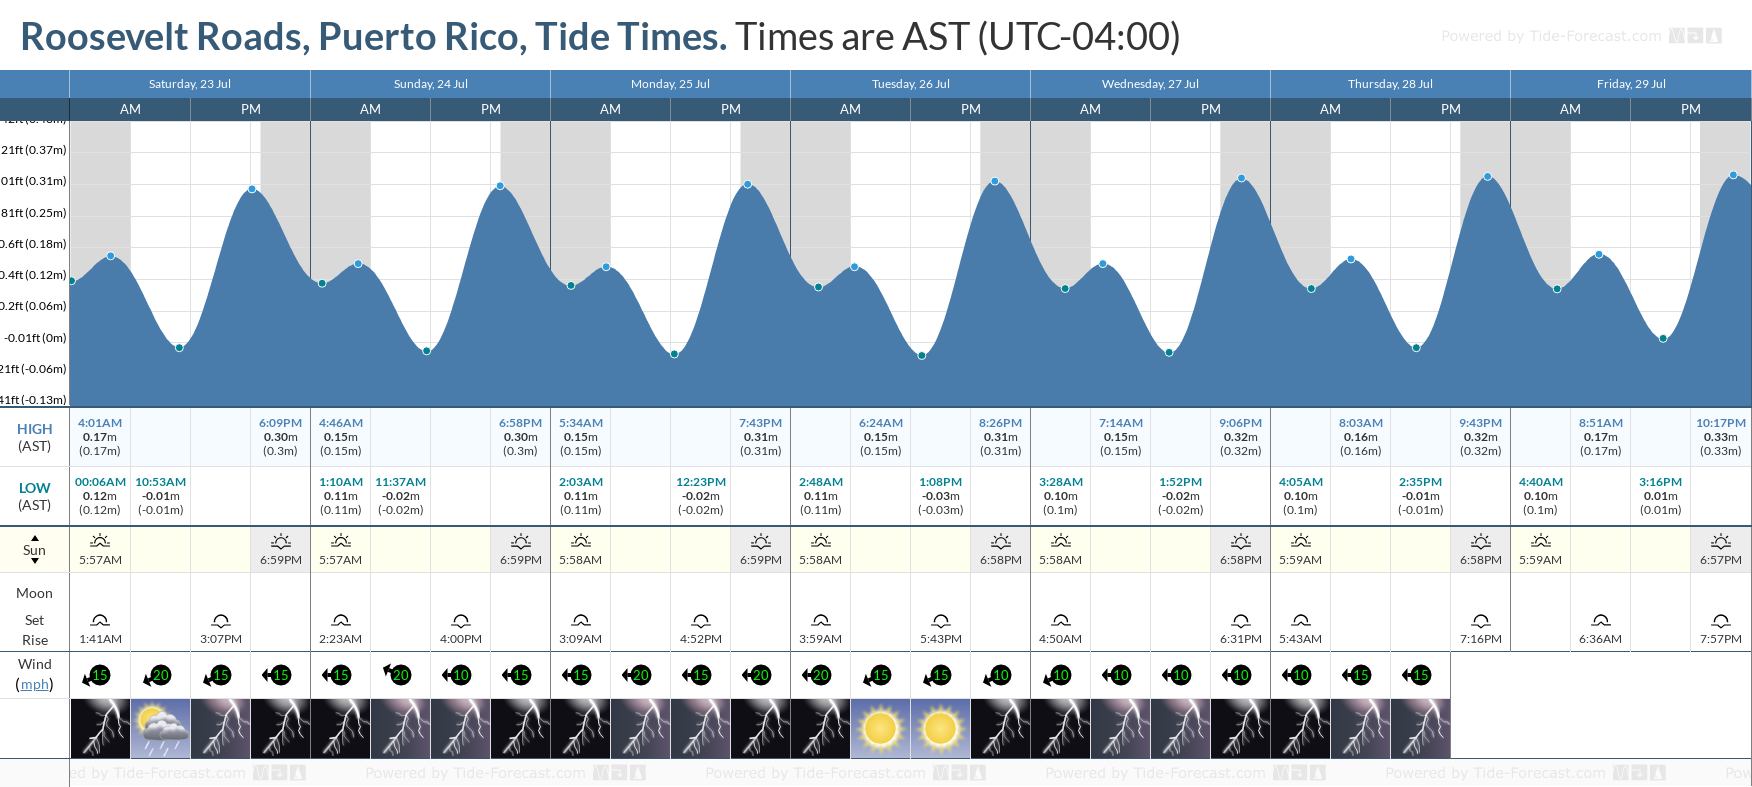 Roosevelt Roads, Puerto Rico Tide Chart including high and low tide tide times for the next 7 days